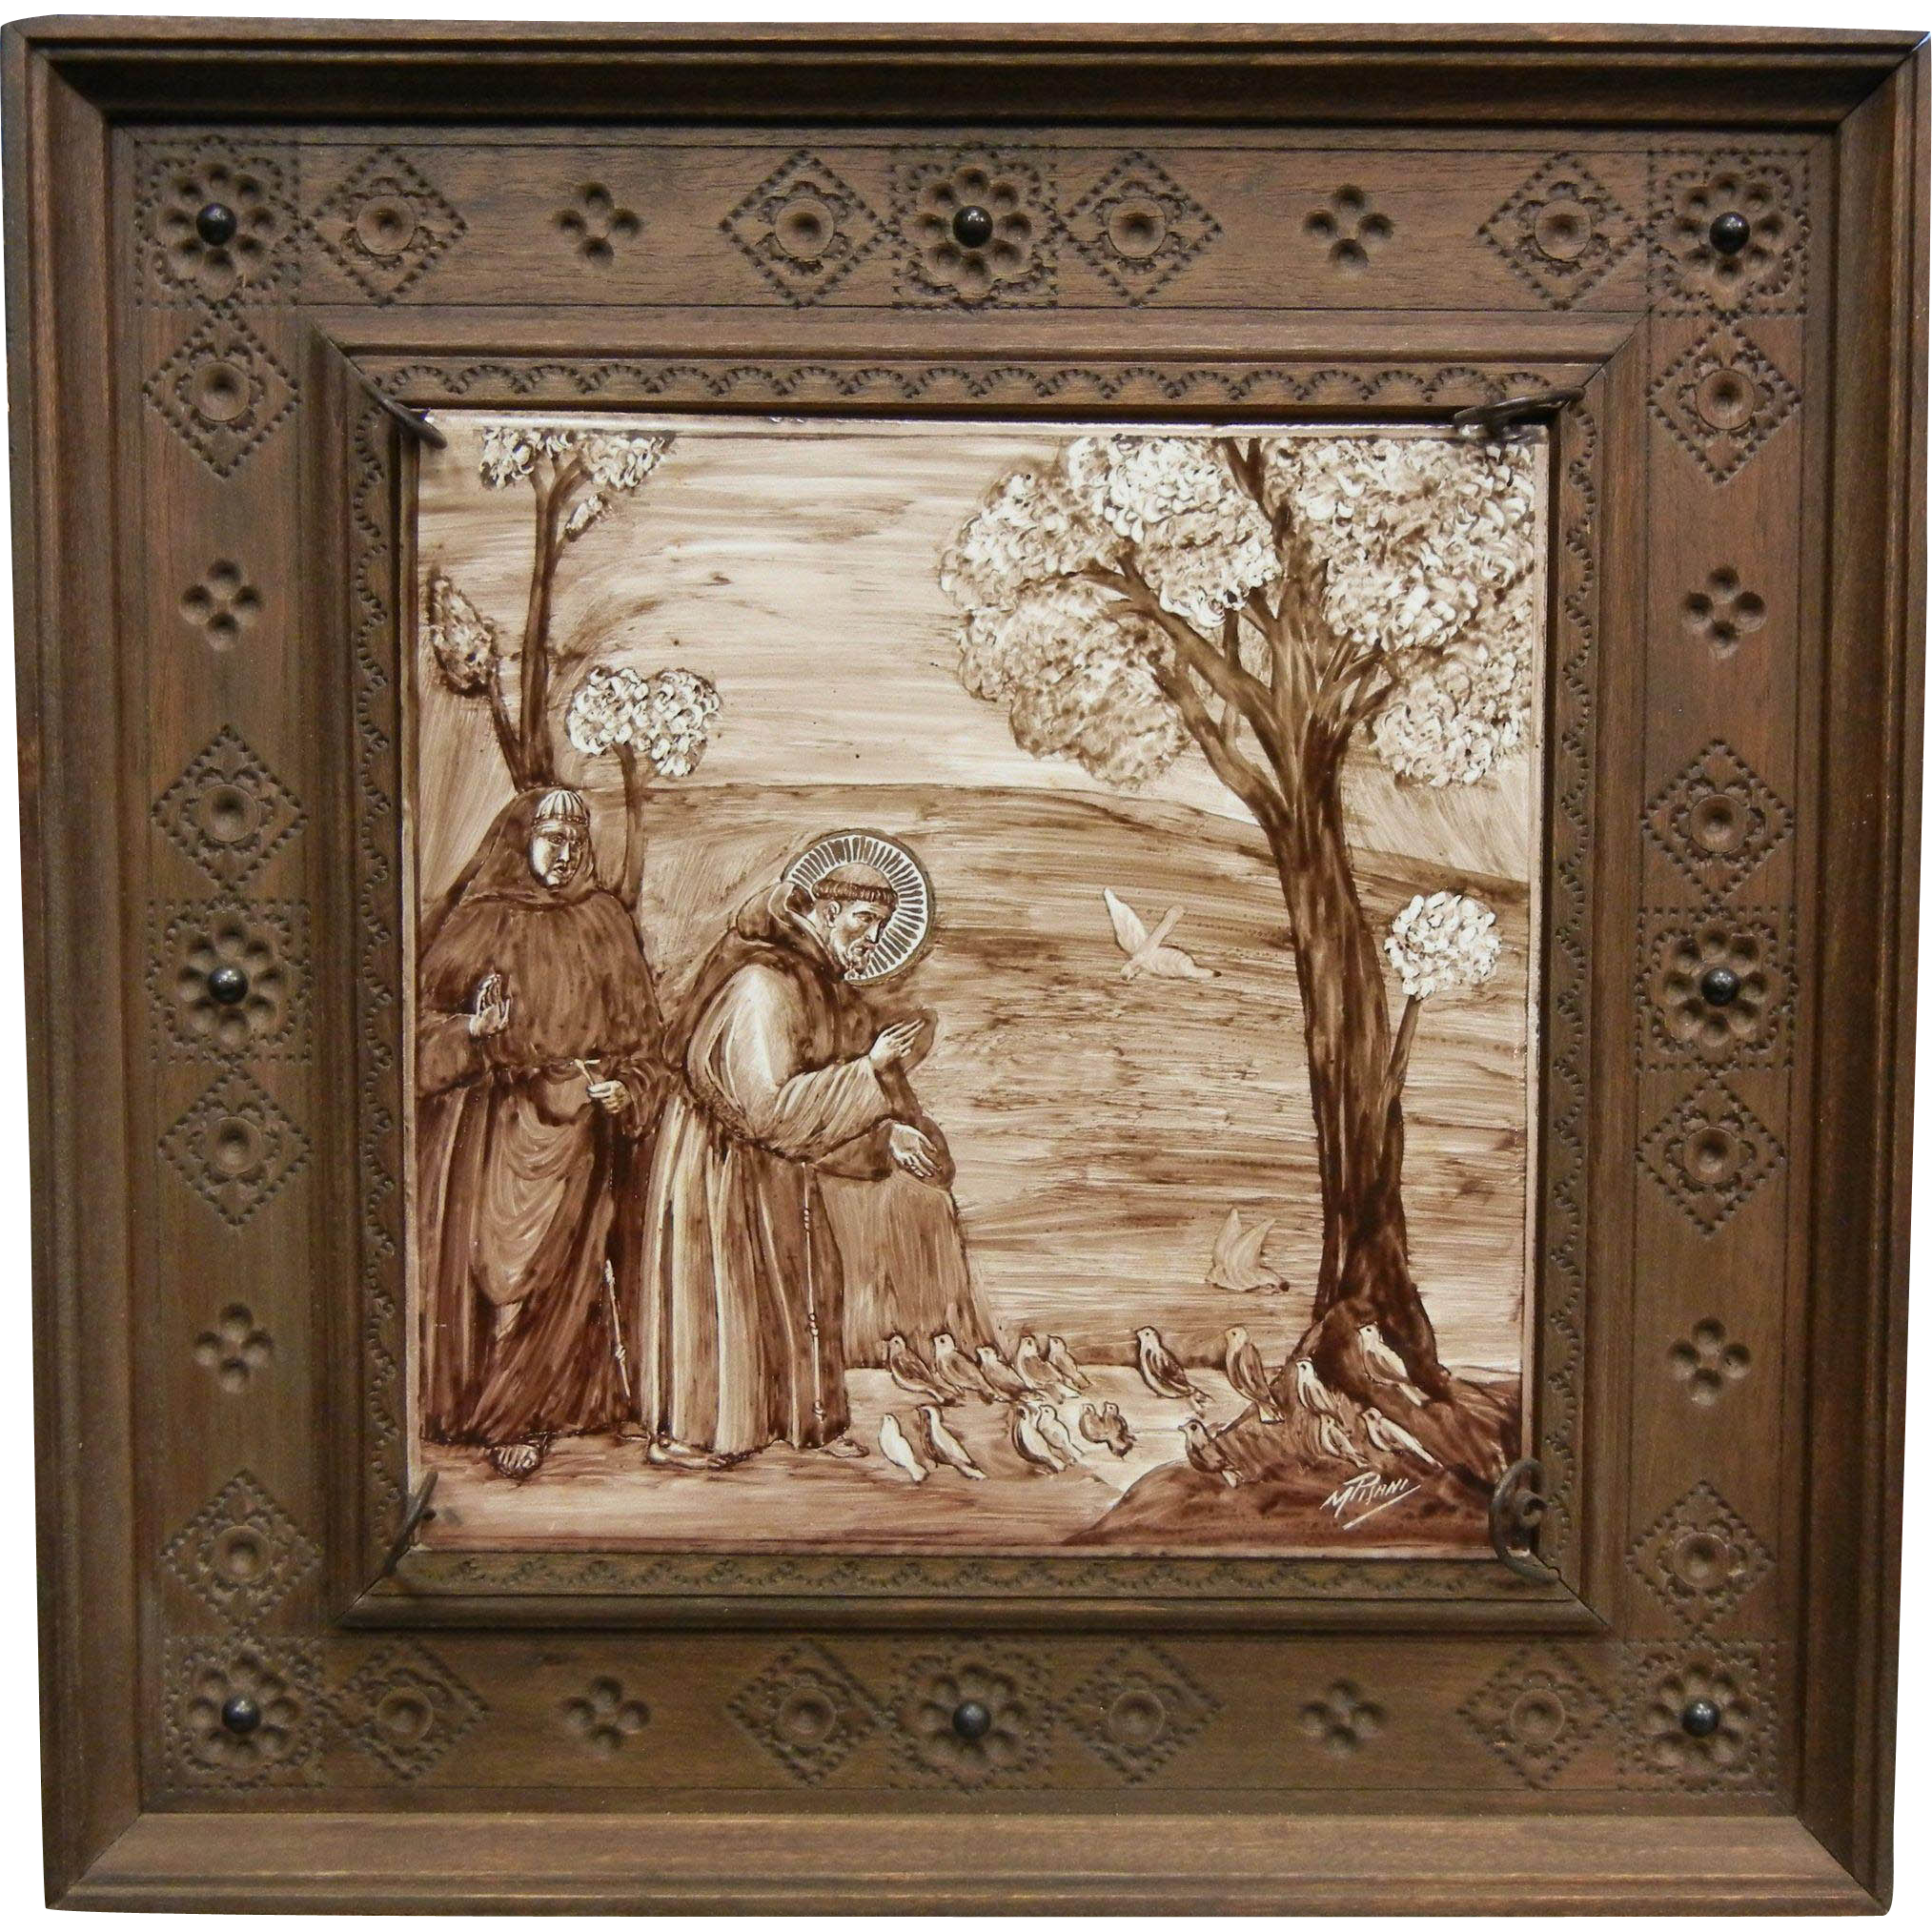 Vintage Hand Painted Ceramic Tile Of St. Francis of Assisi in Wooden Frame